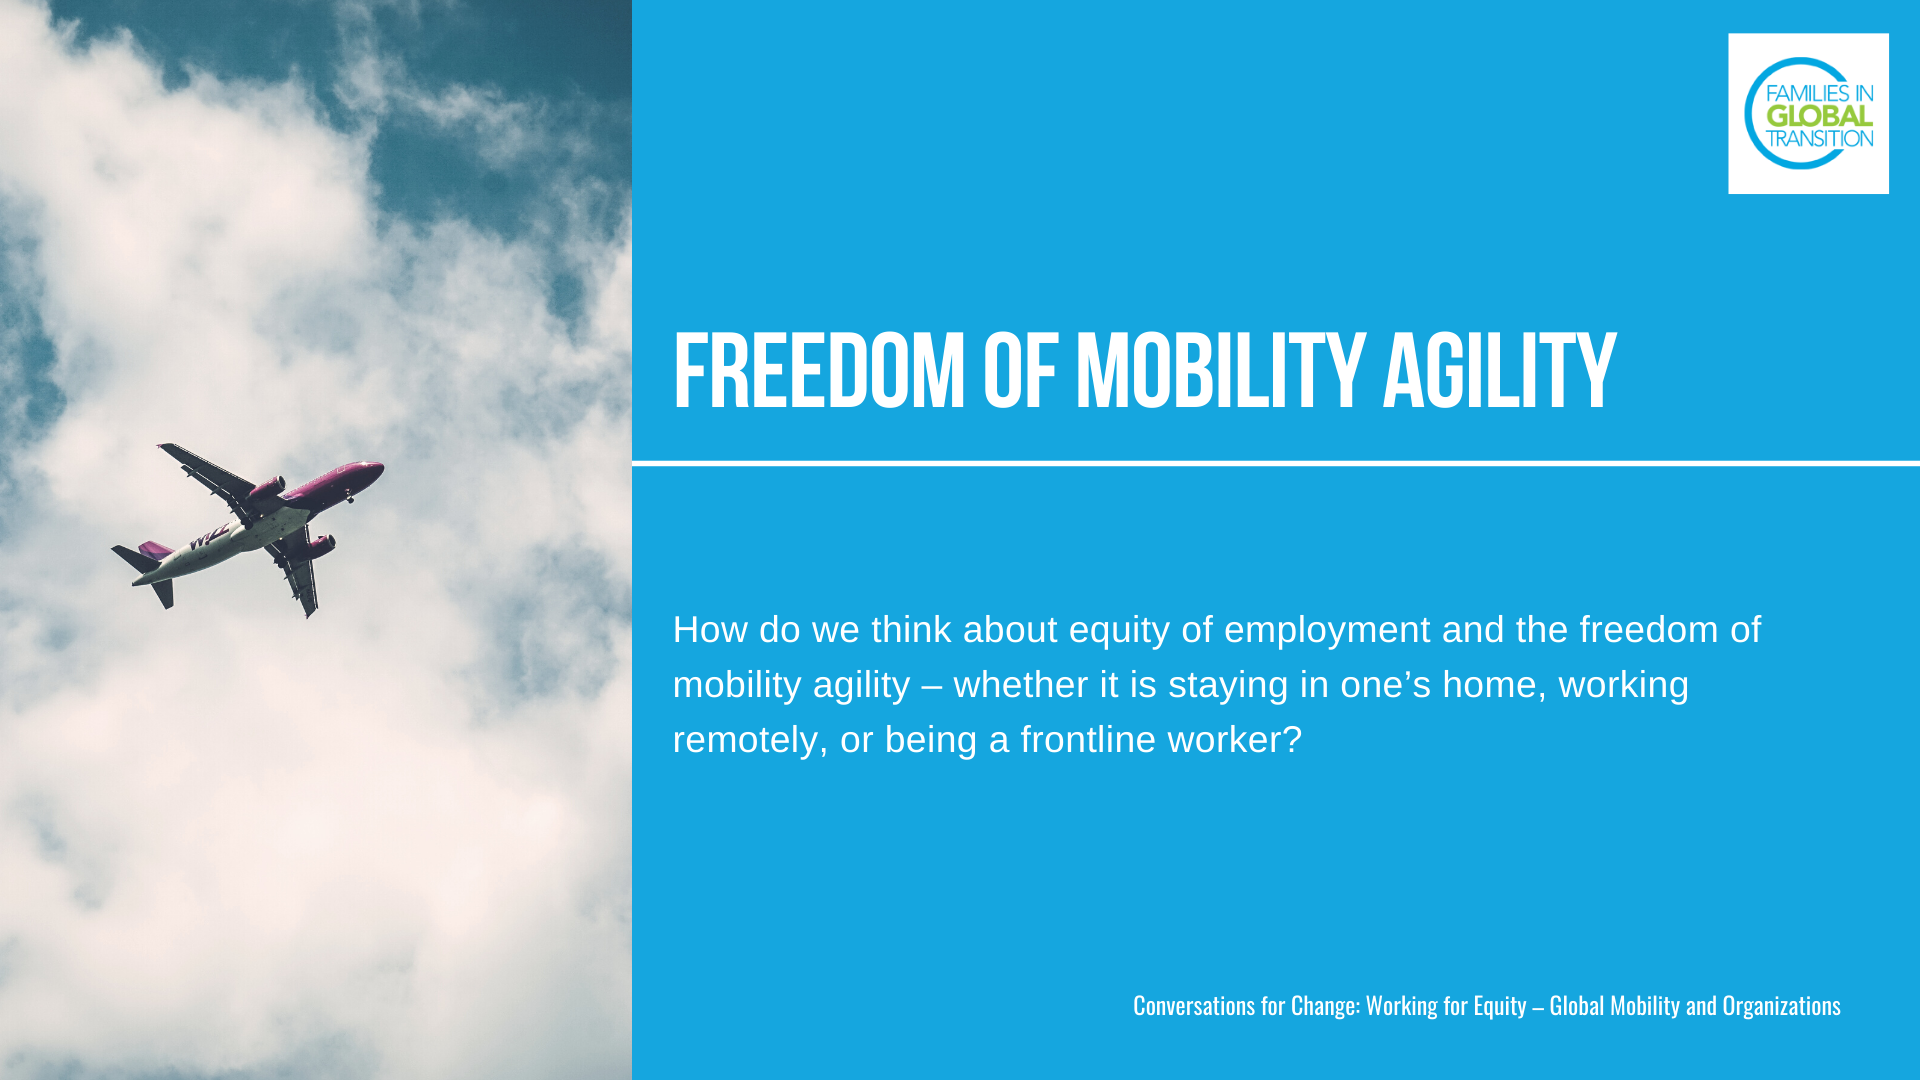 Freedom of mobility agility: How do we think about equity of employment and the freedom of mobility agility – whether it is staying in one's home, working remotely, or being a frontline worker?